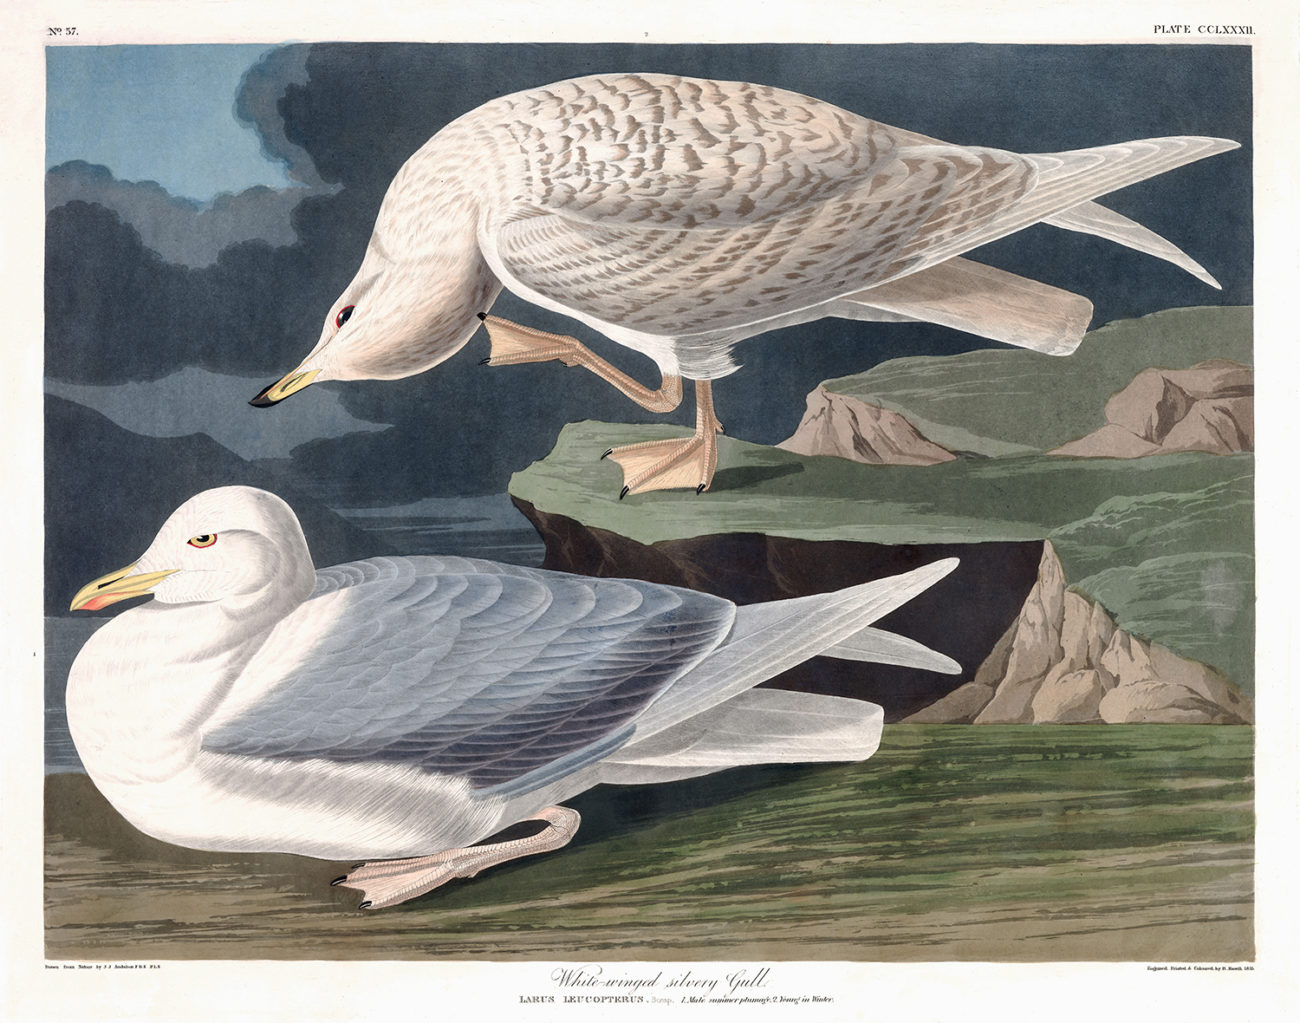 Plate 282 - White Winged Silvery Gull